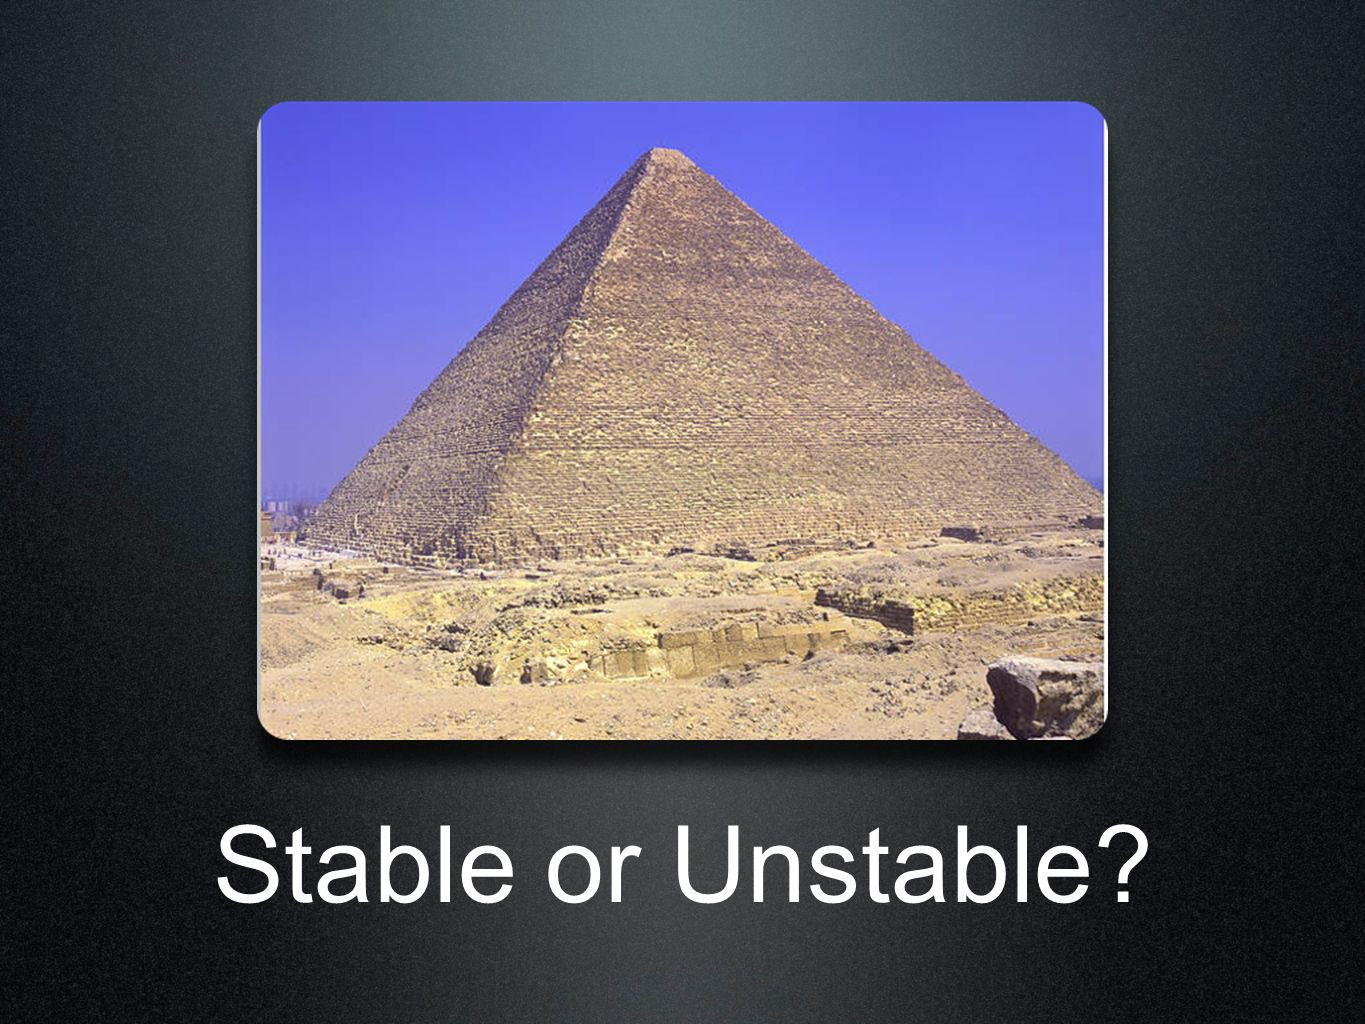 Stable or Unstable